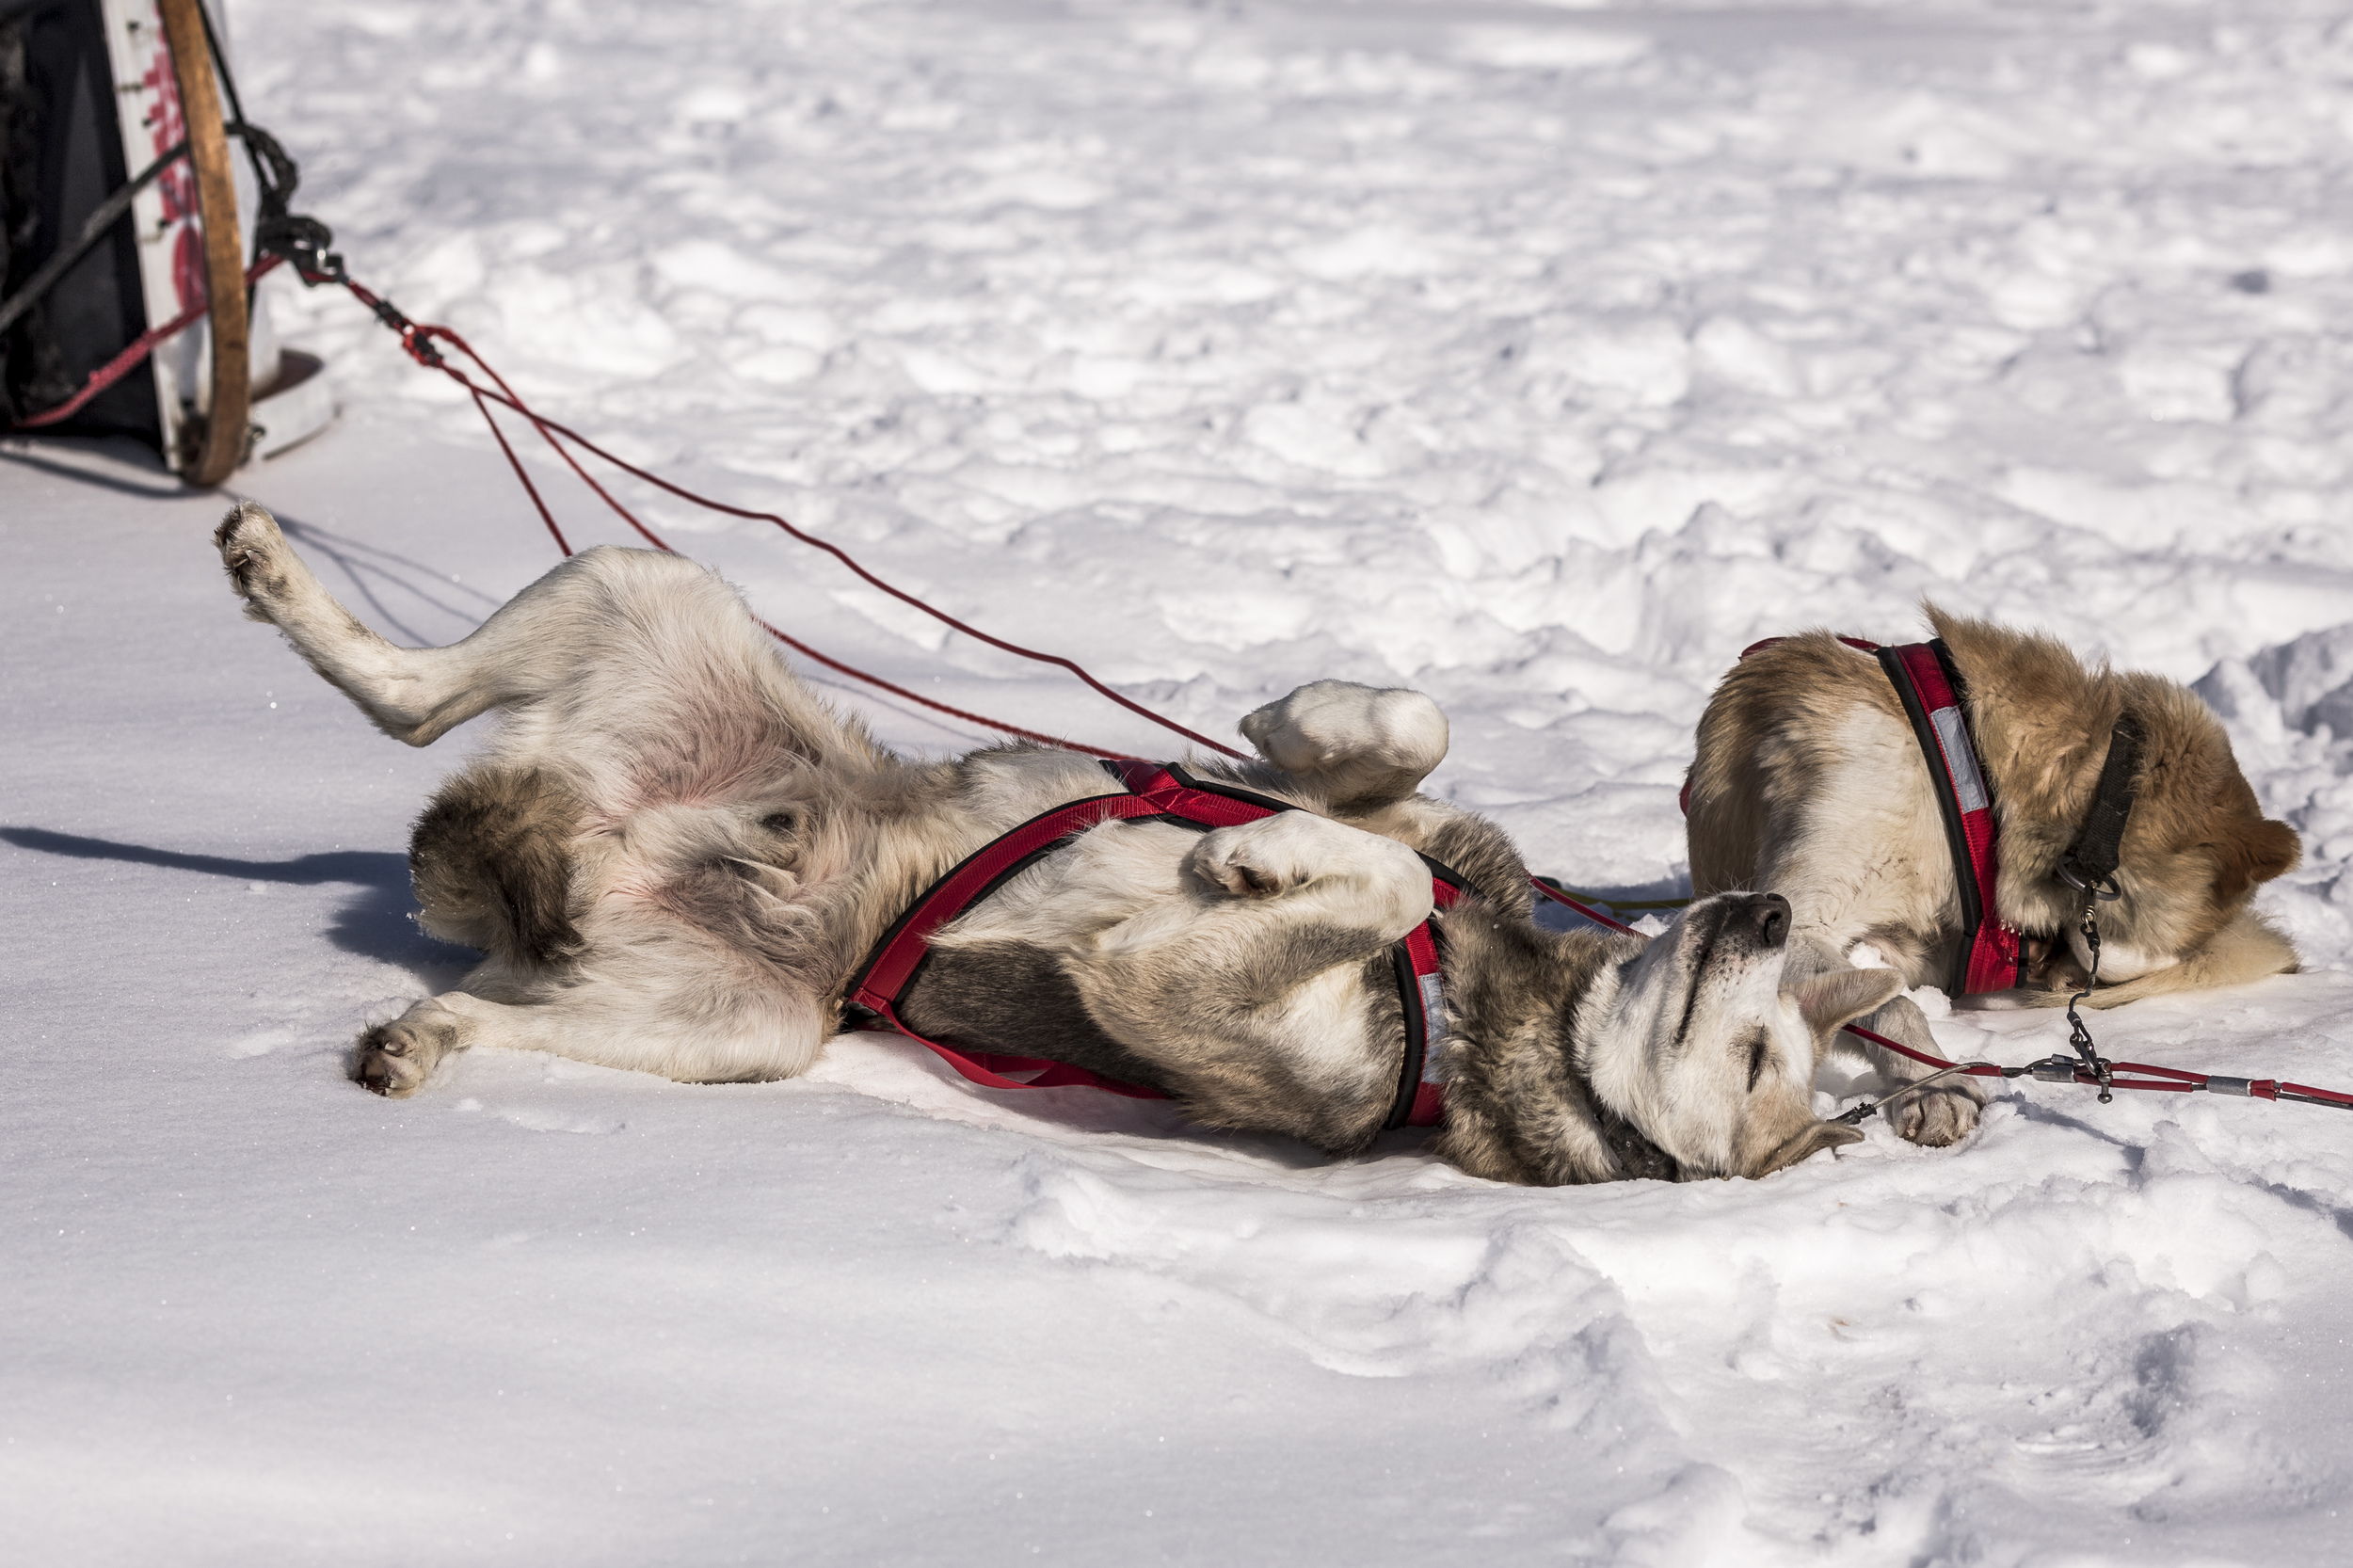 After a long morning of running, the dogs are ready for a midday nap at the Påltsa checkpoint. (Photo by Håkan Wike for Fjällräven International. All rights reserved.)